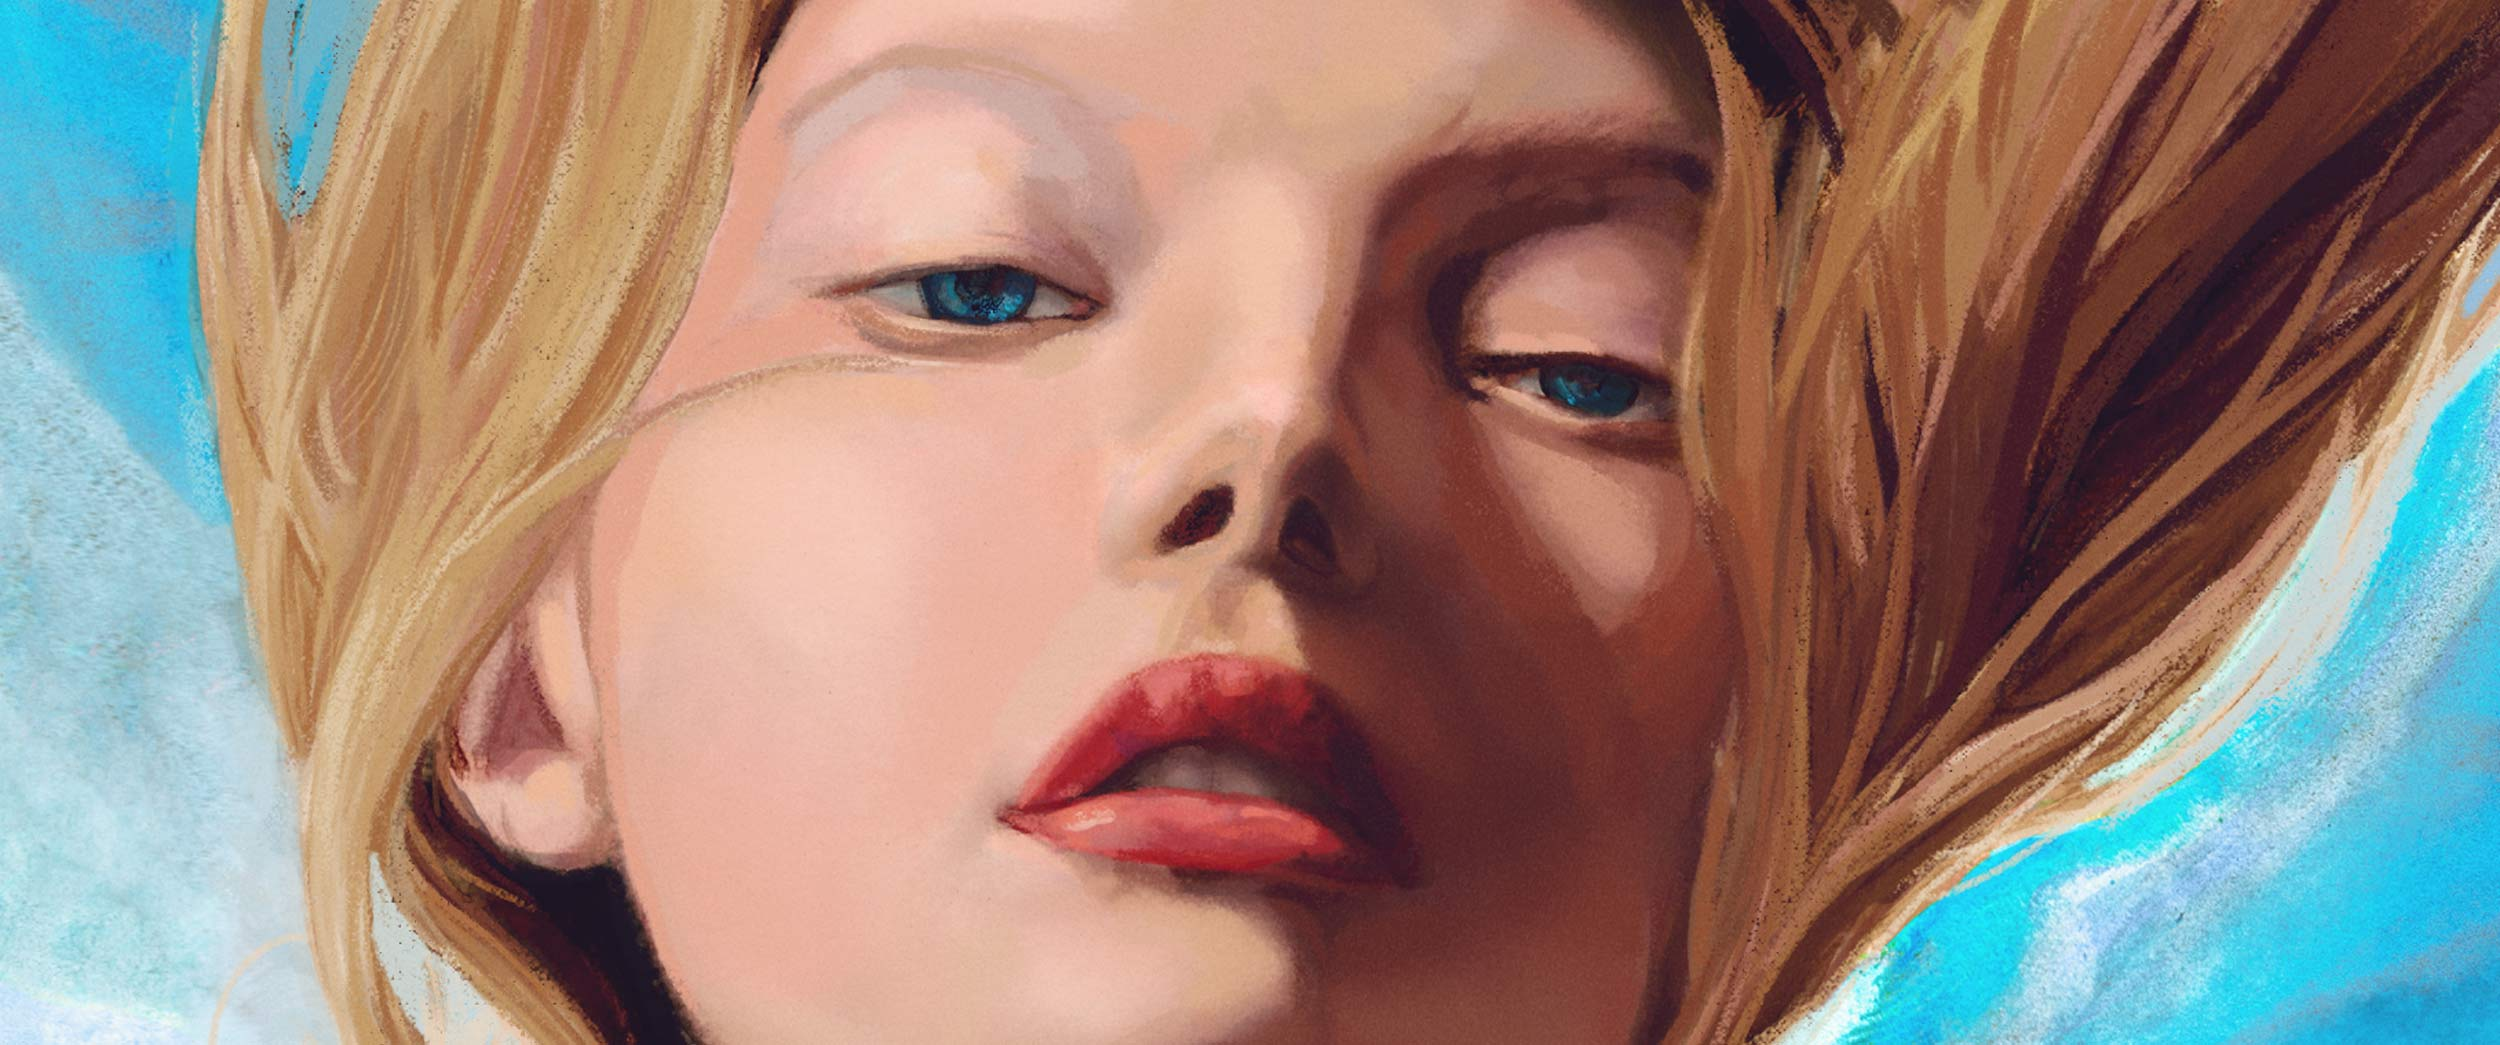 Close up Artist Danny Roberts Painting of Gemma Ward wearing benenciaga based on photo by nick knight